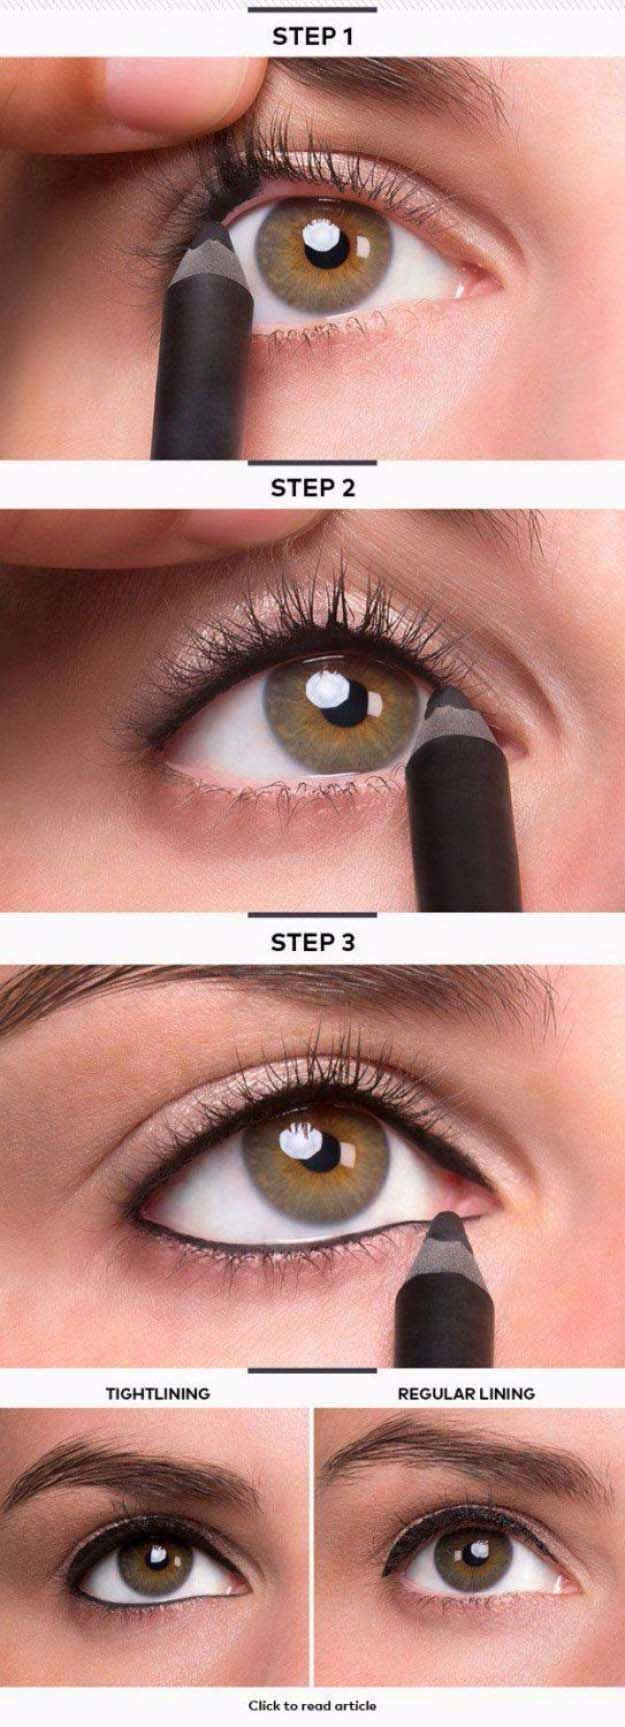 Makeup Tutorials For Small Eyes - Tightline Eye Makeup - Easy Step By Step Guides On How to Apply Eyeliner and Get Perfect Lashes and Brows and How To Make Your Eyes Look Bigger - Beauty Tips for All Different Faces - Eyebrows and Cut Crease Youtube Videos for Girls - thegoddess.com/makeup-tutorials-small-eyes #howtocutcrease #applyinglashes